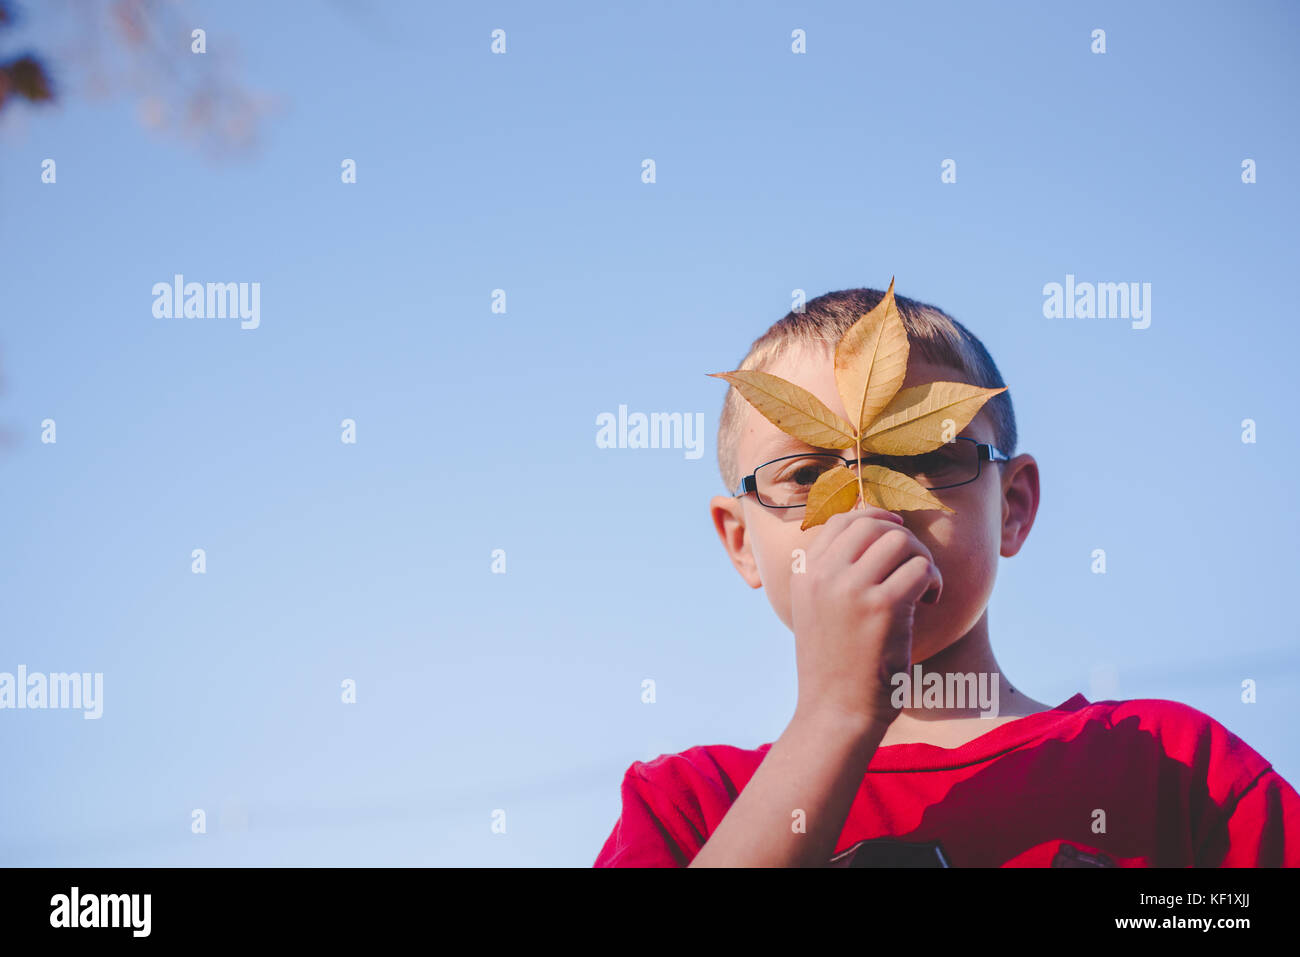 10-11 year old boy holding leaf in front of face - Stock Image